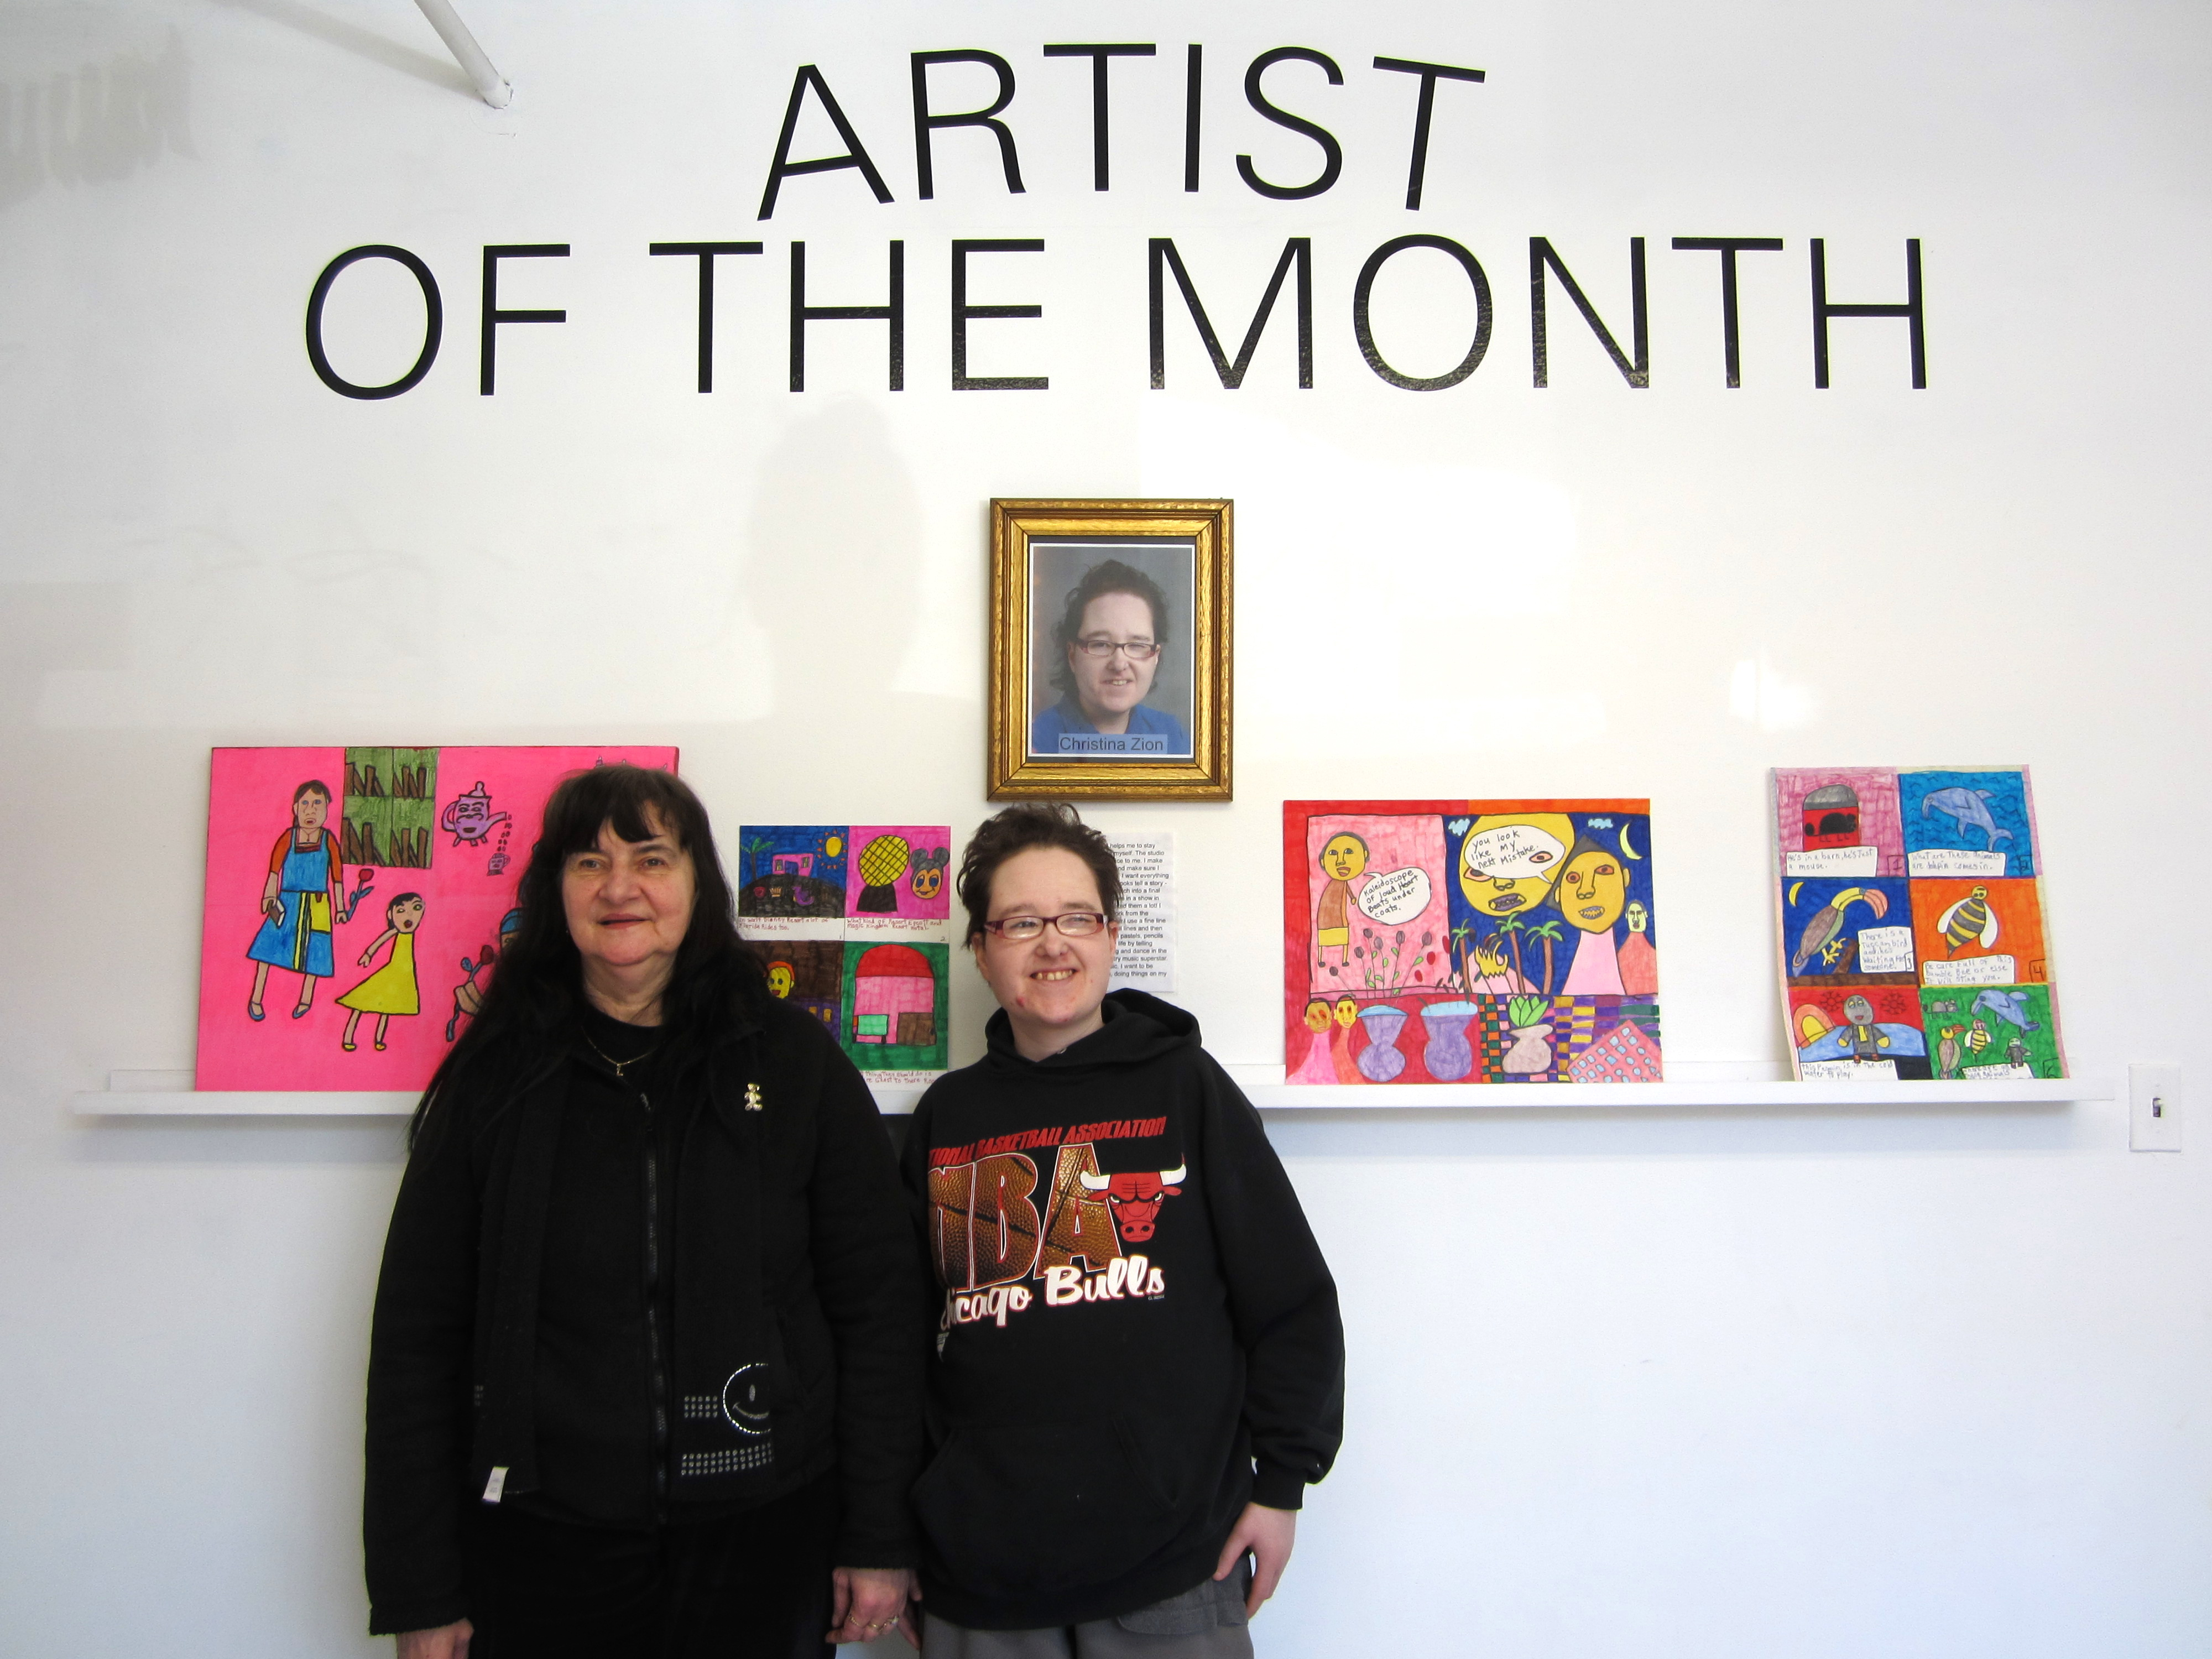 Two Women standing in front of a wall with four drawings